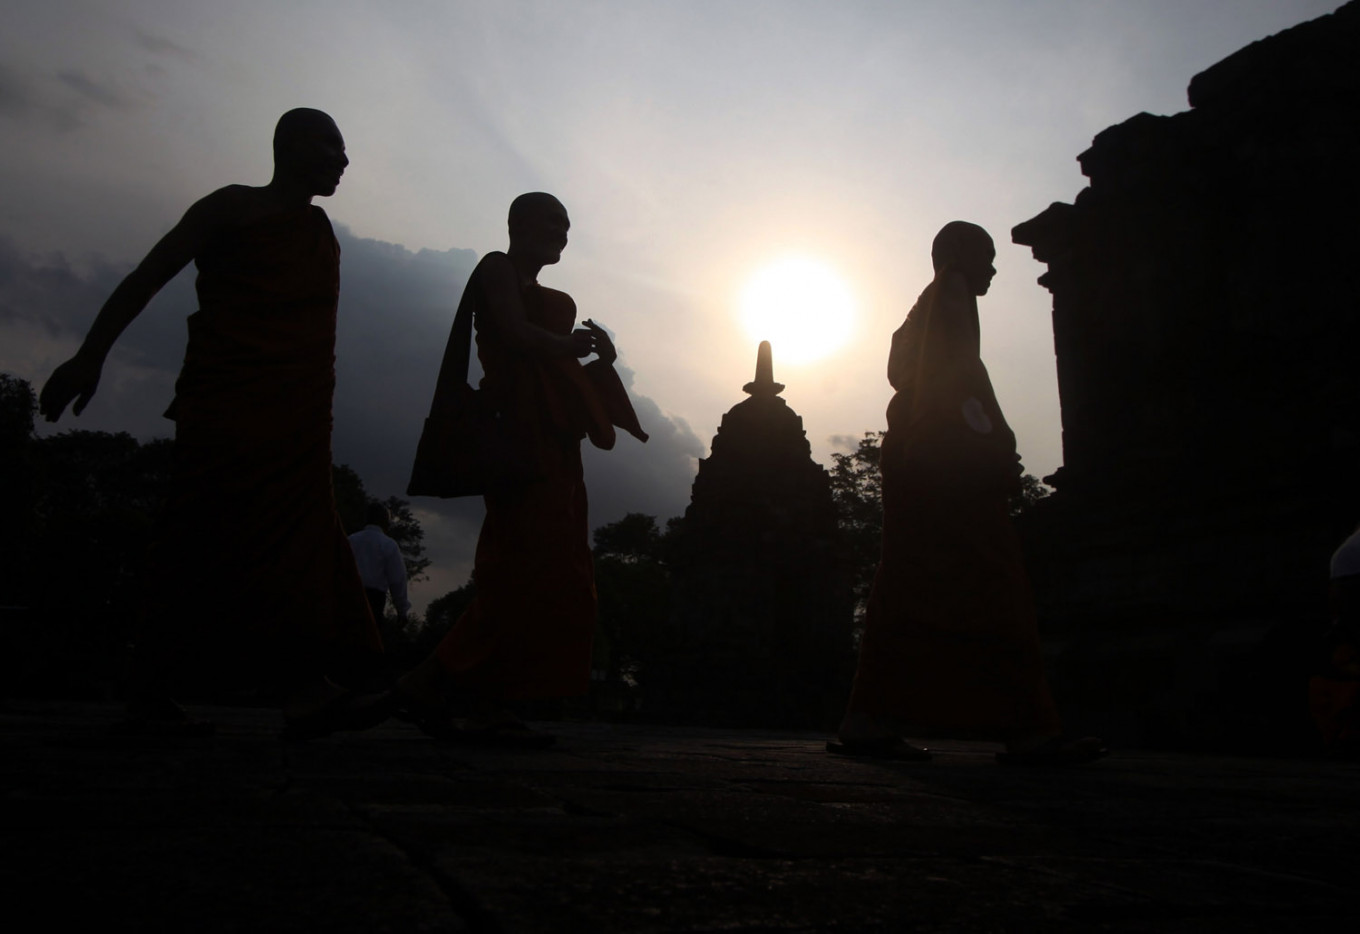 Silhouettes of Buddhist monks at Lumbung Temple in Central Java. JP/Boy T Harjanto